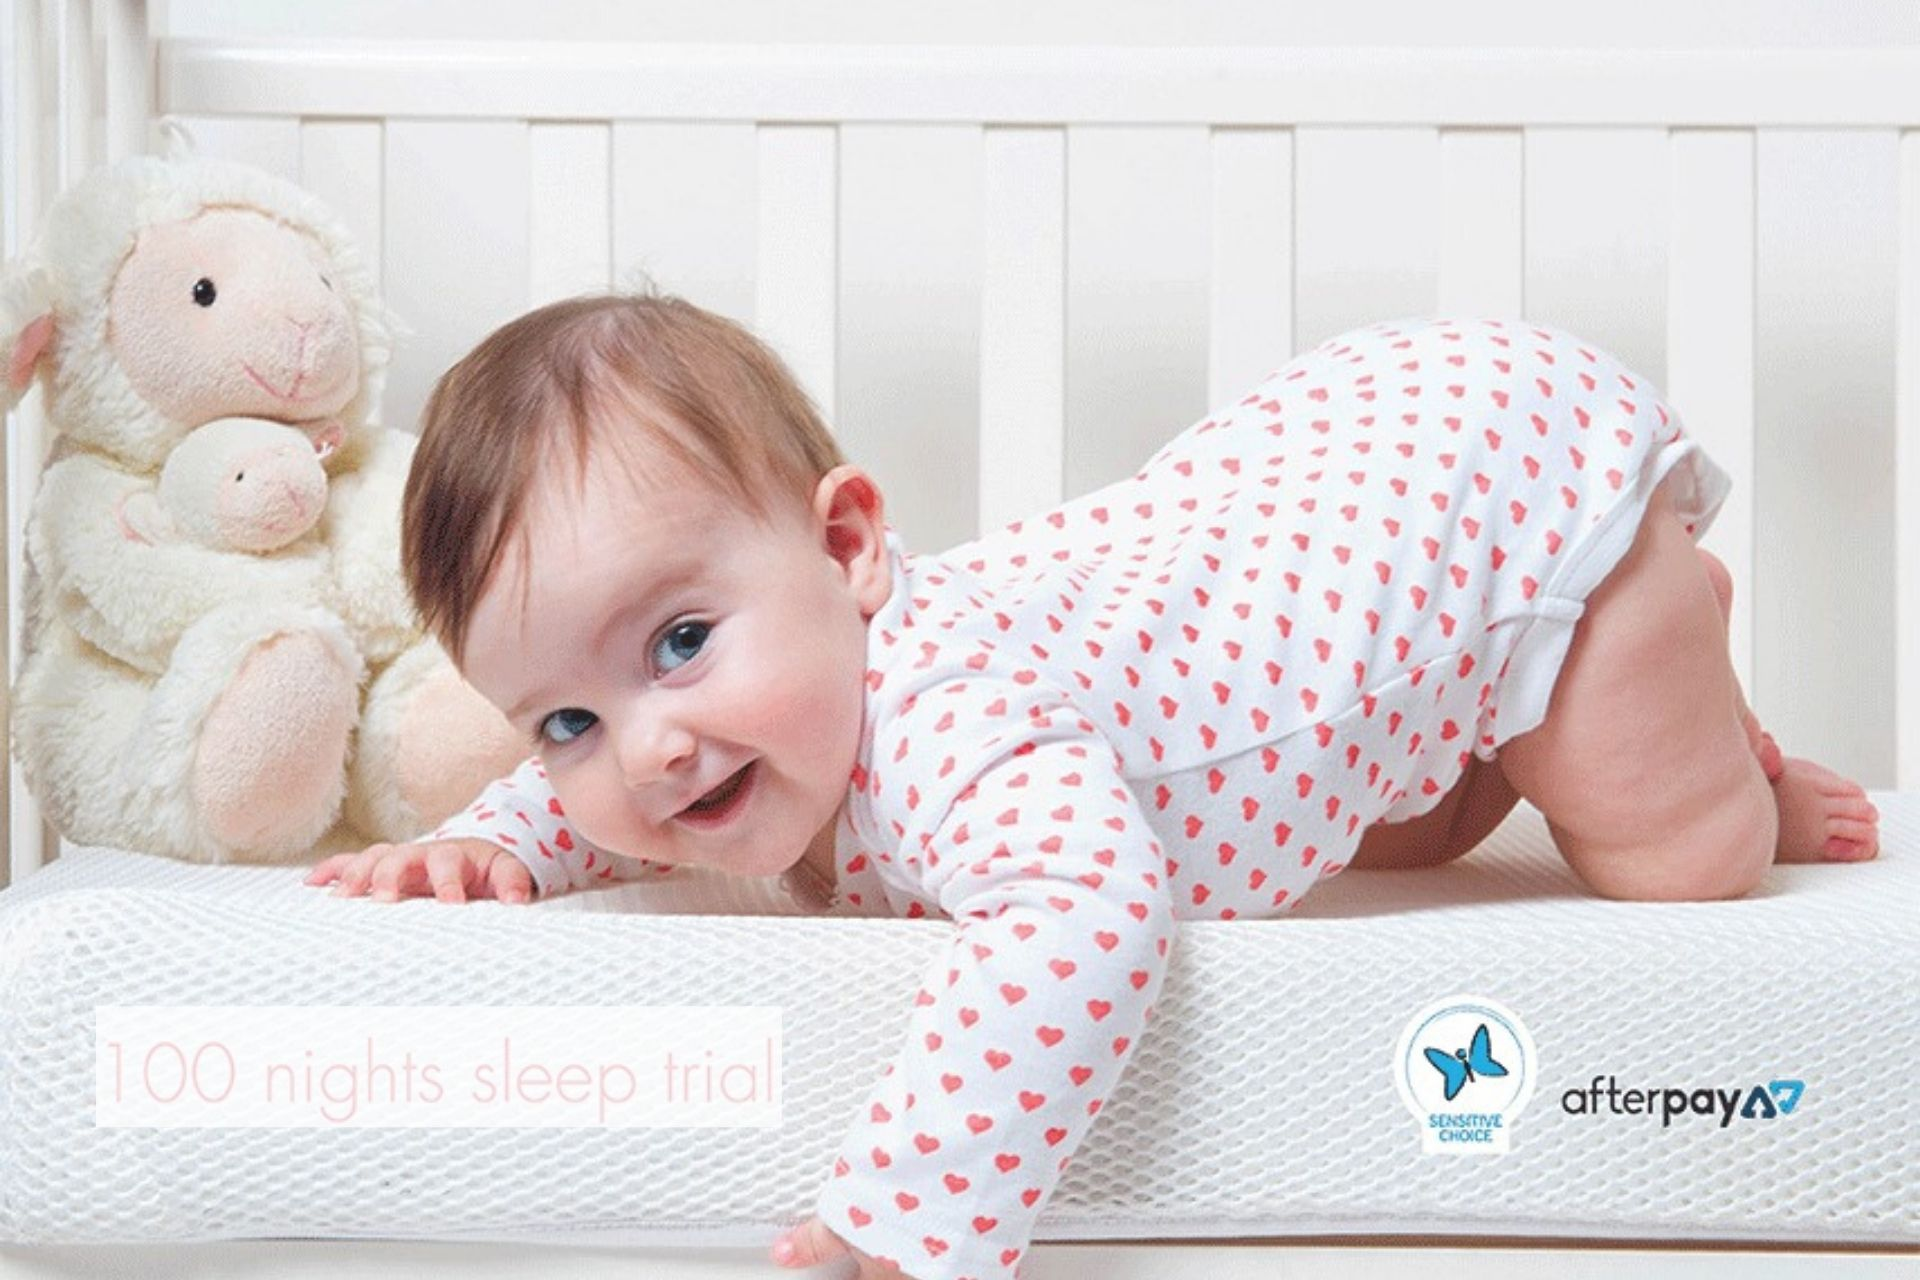 safe bedding for your baby